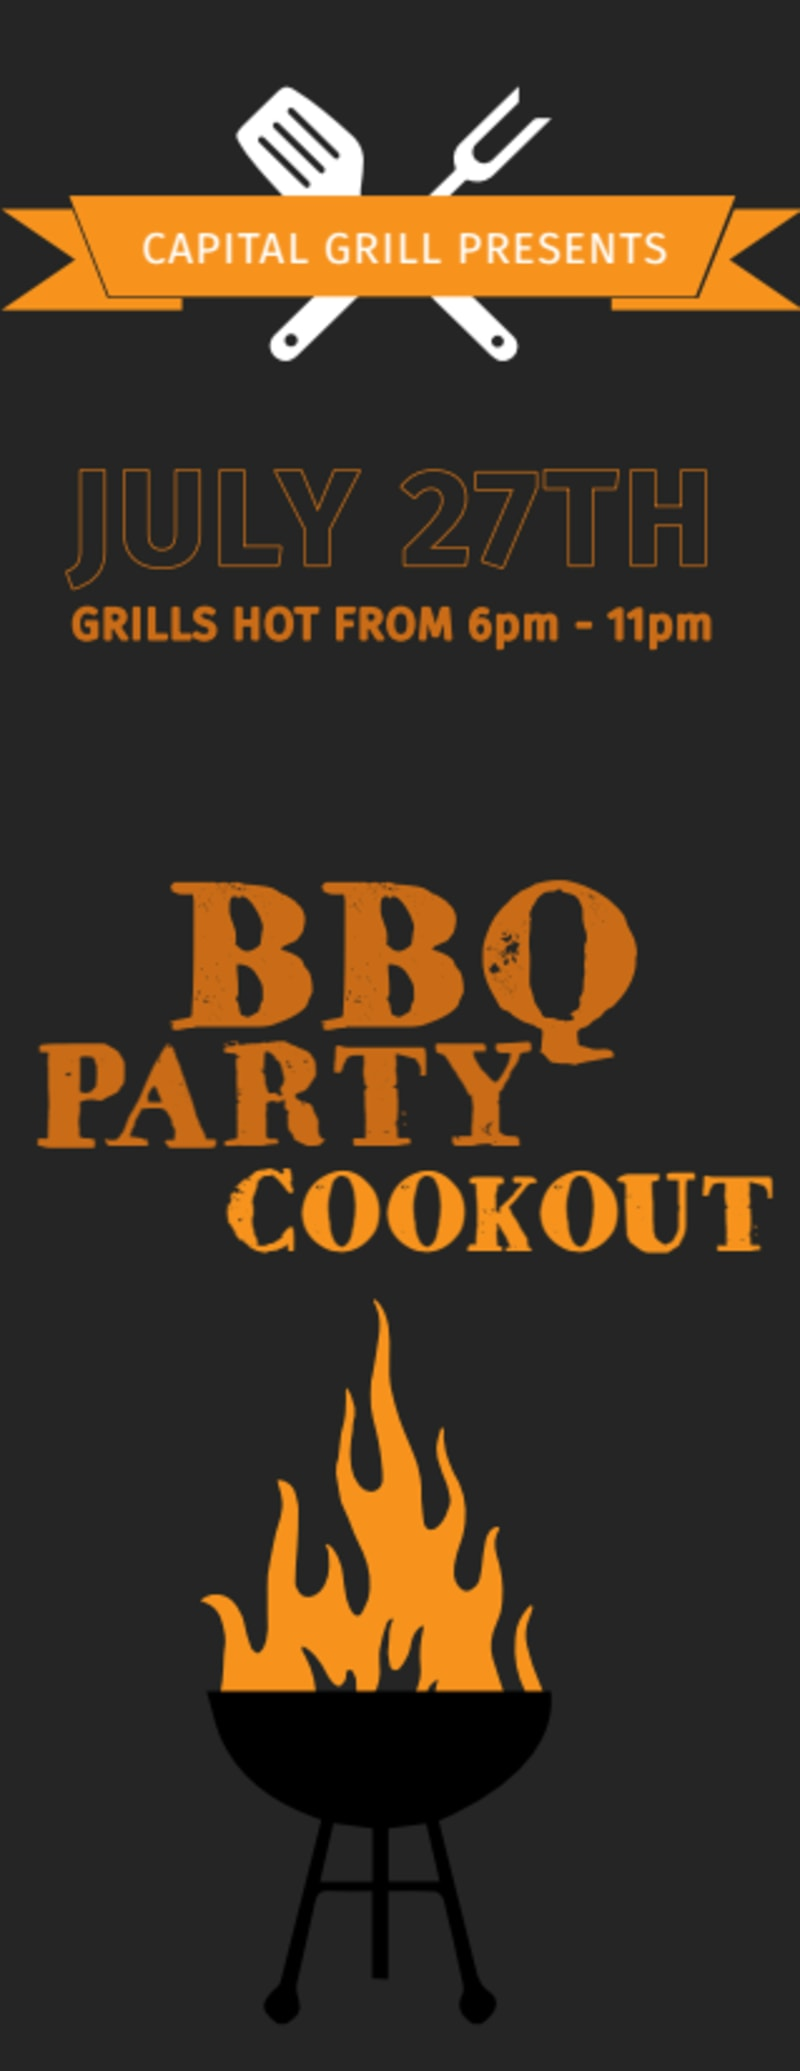 BBQ Party Cookout Ticket Template Preview 3